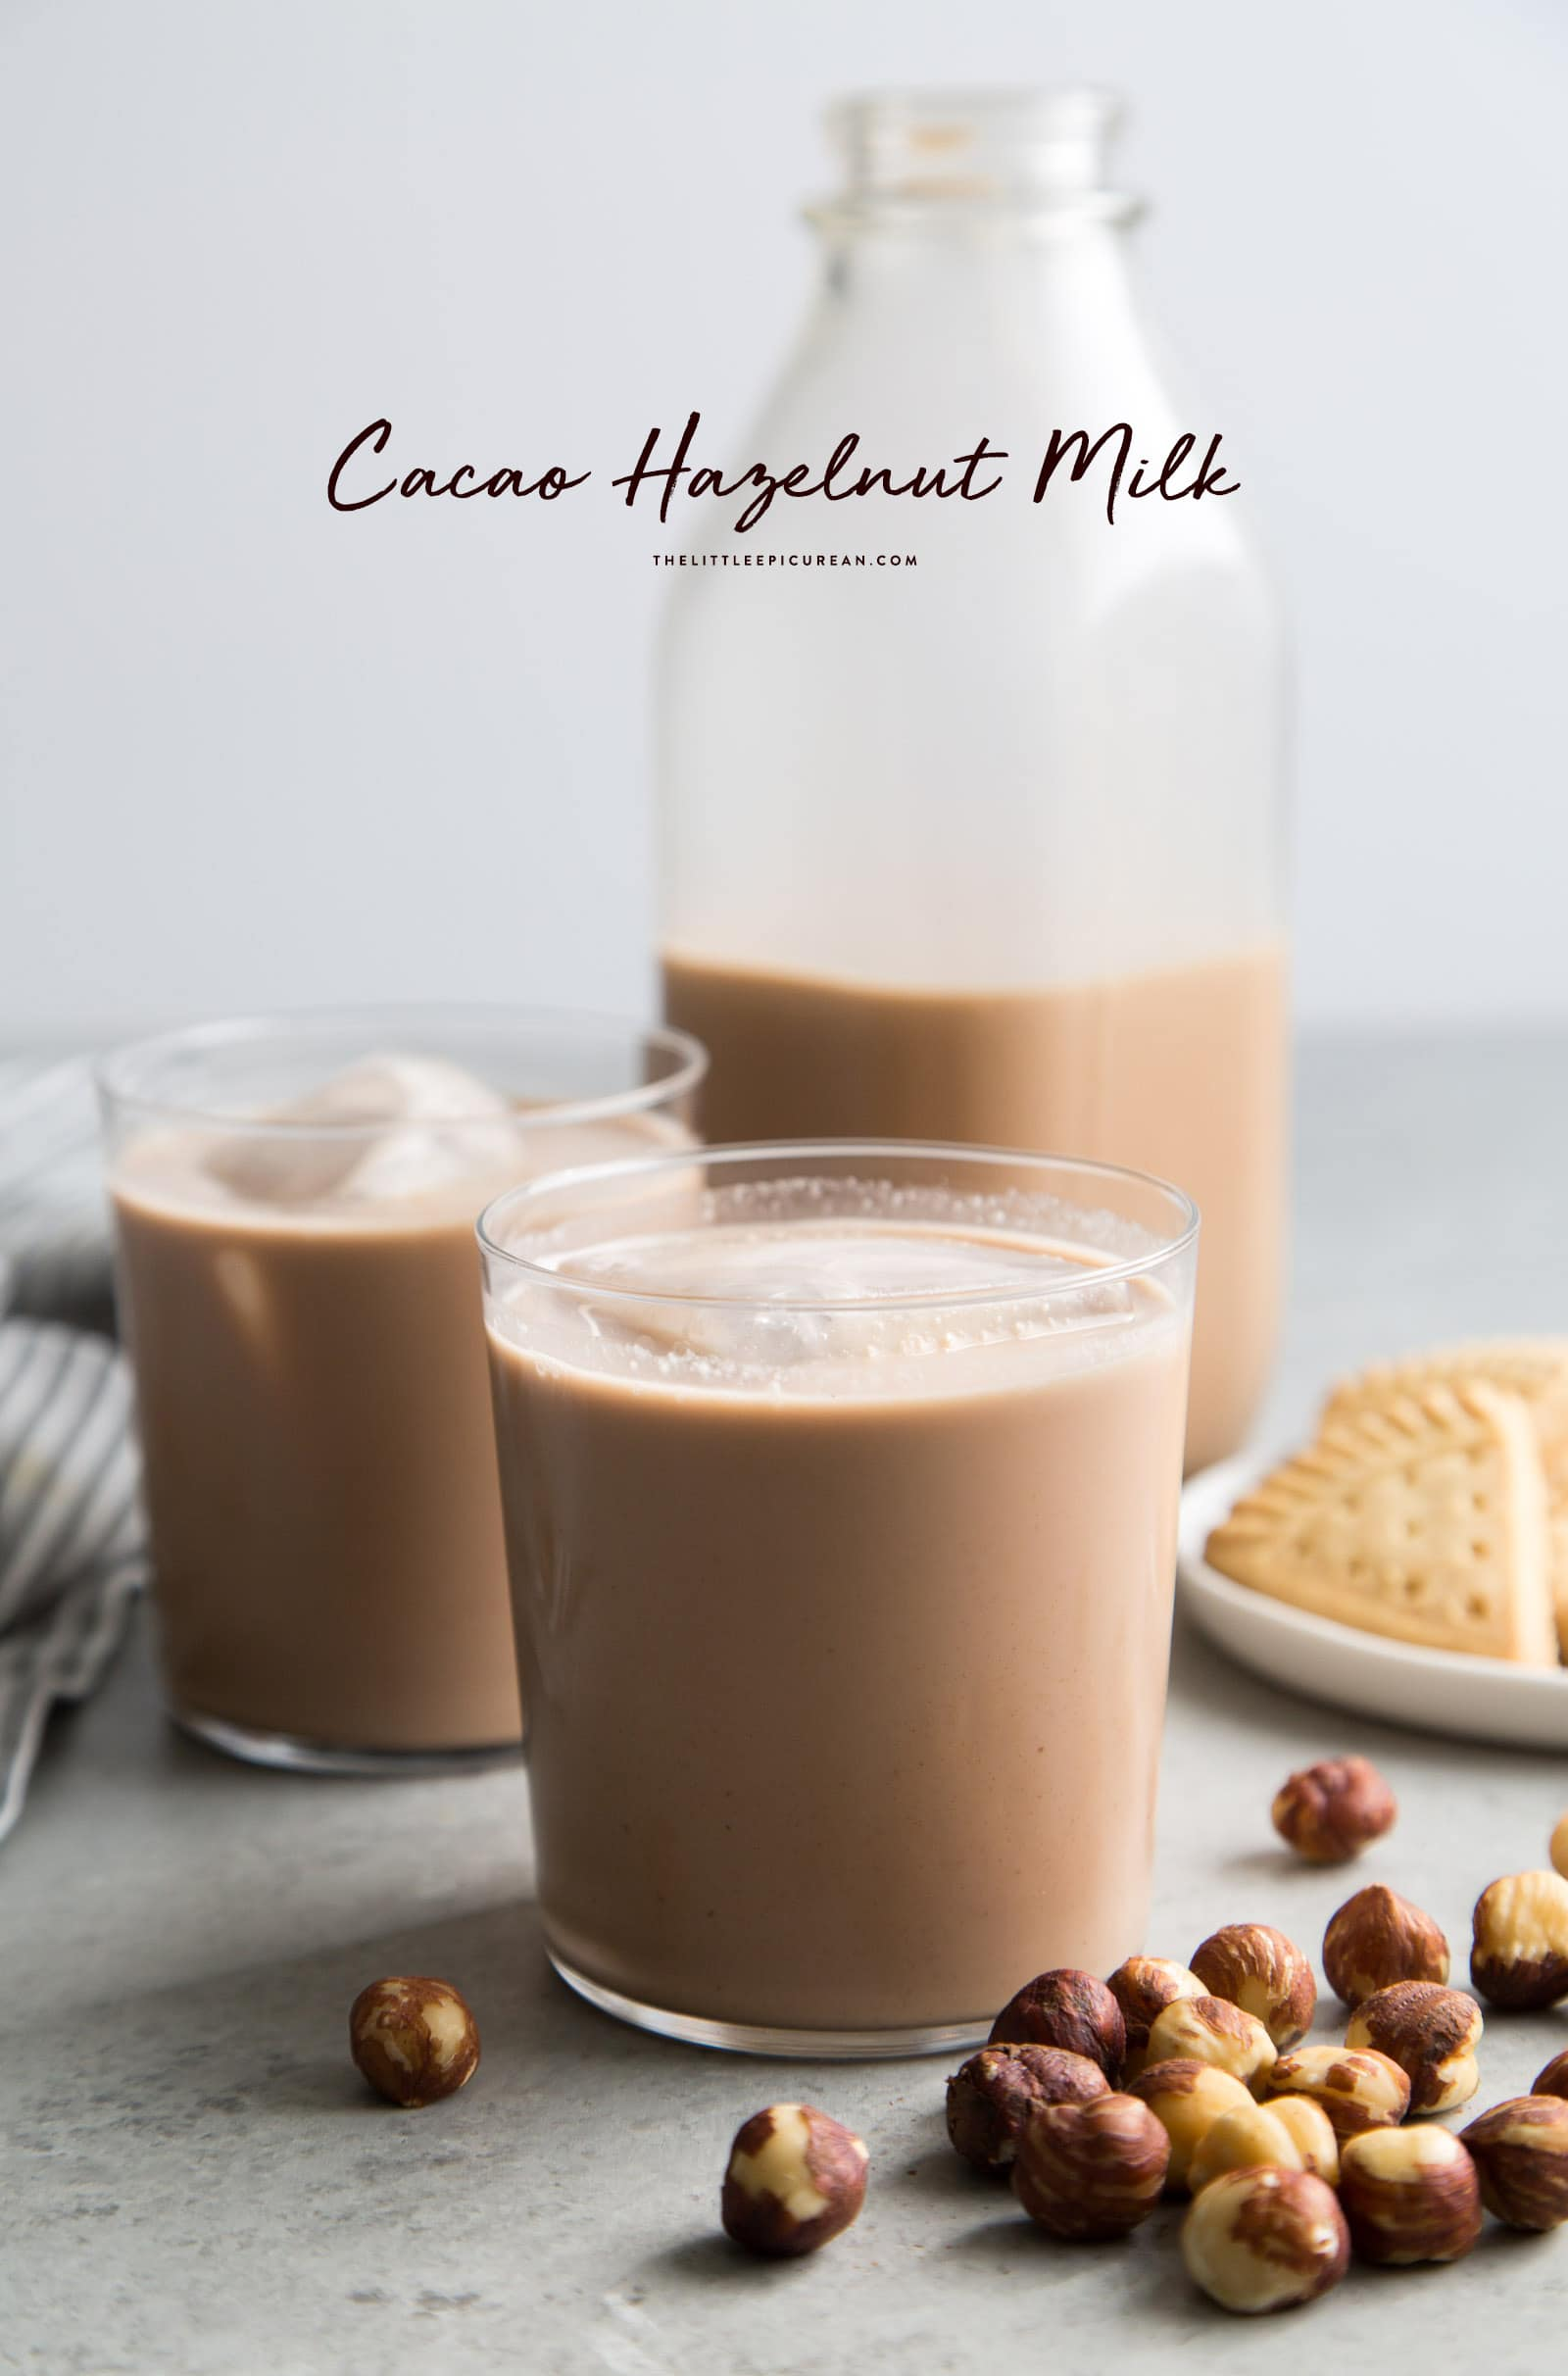 Cacao Hazelnut Milk